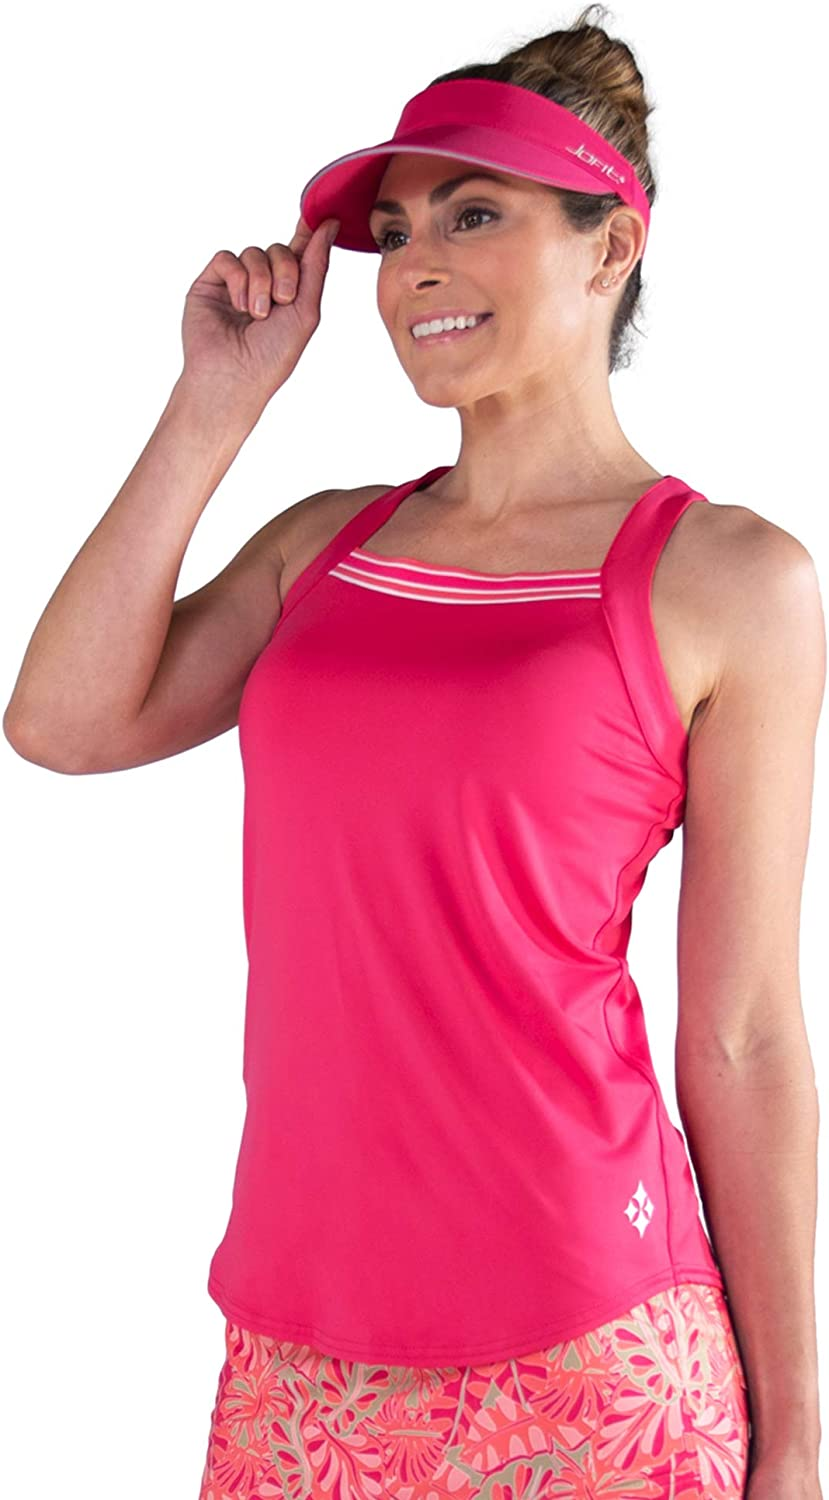 Jofit Apparel Free shipping anywhere in the nation Women's Athletic Clothing Top Rib New sales Square Tank Neck